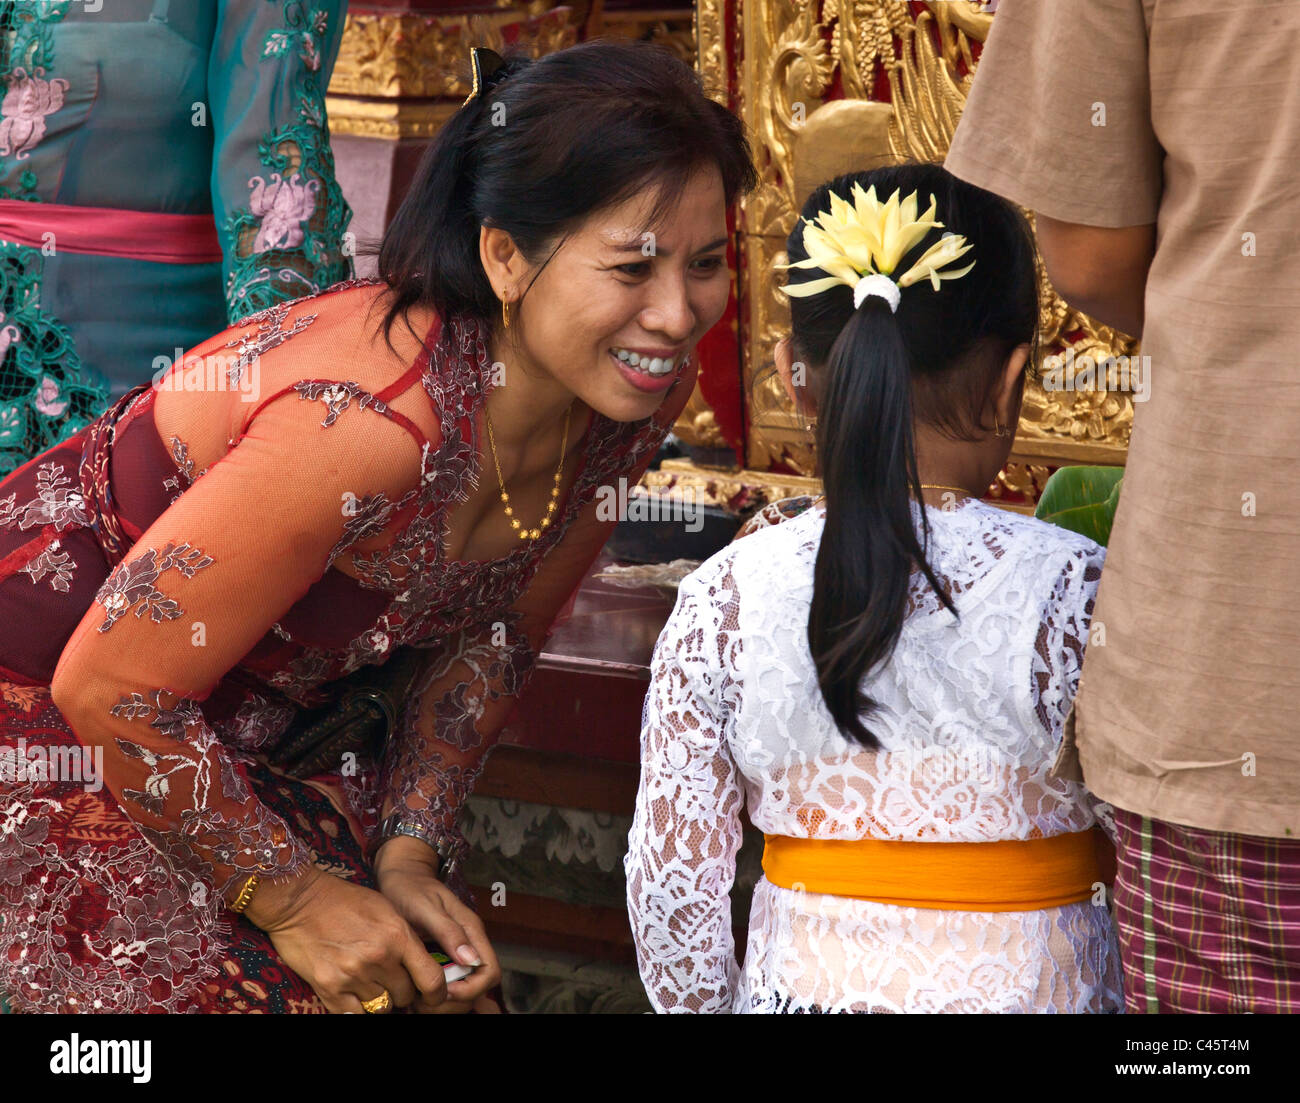 BALINESE WOMAN and daughter at PURA TAMAN SARASWATI during the GALUNGAN FESTIVAL - UBUD, BALI, INDONESIA - Stock Image